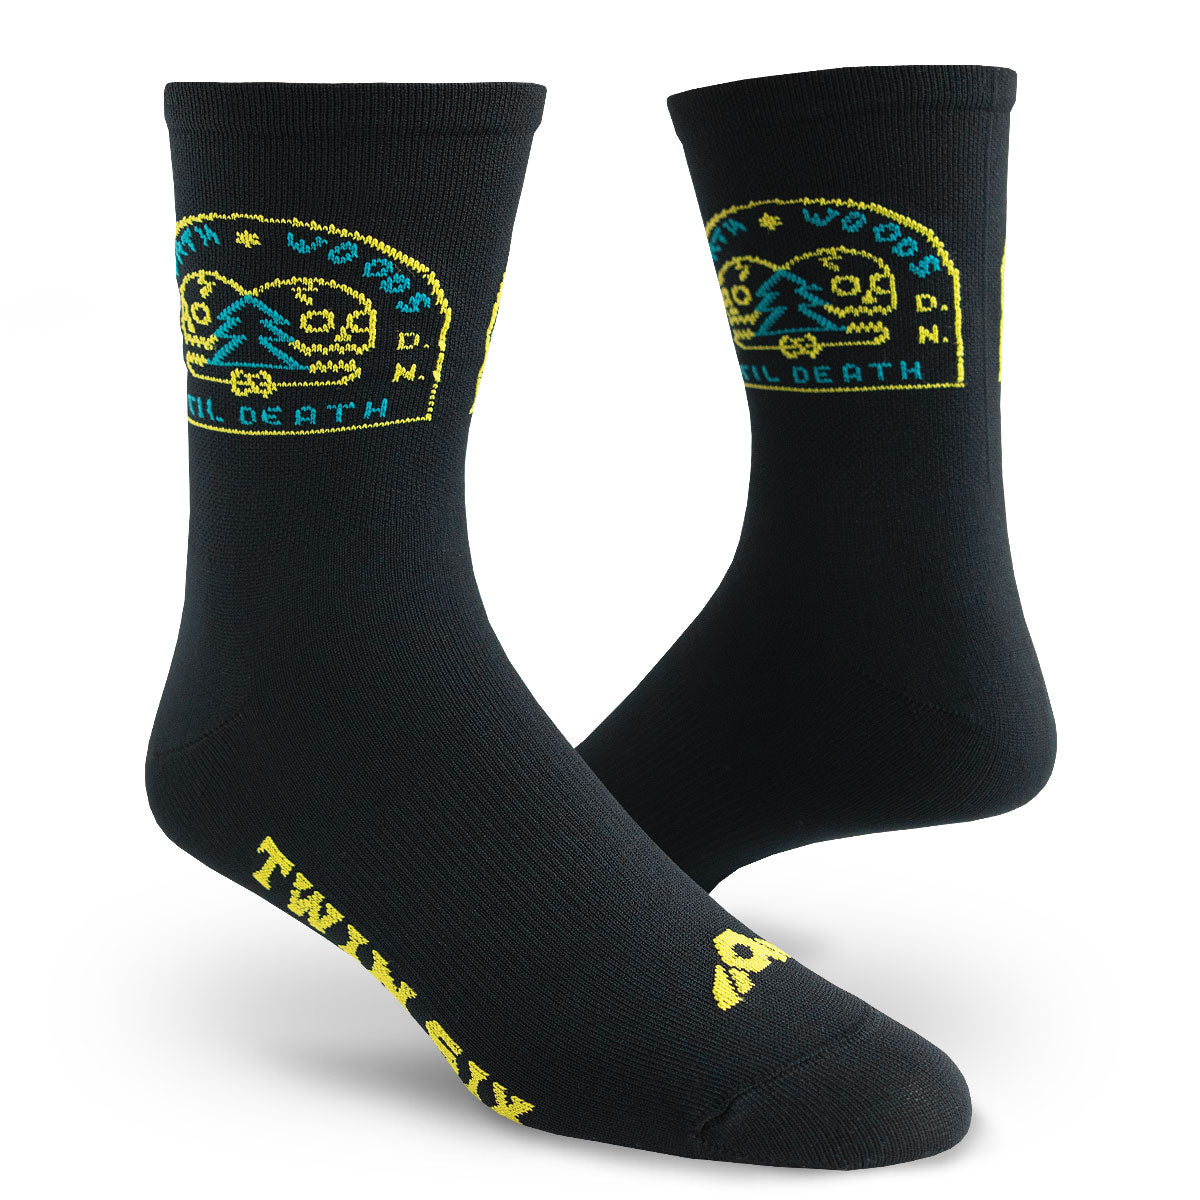 Race Club Du Nord (AQUA) Sock